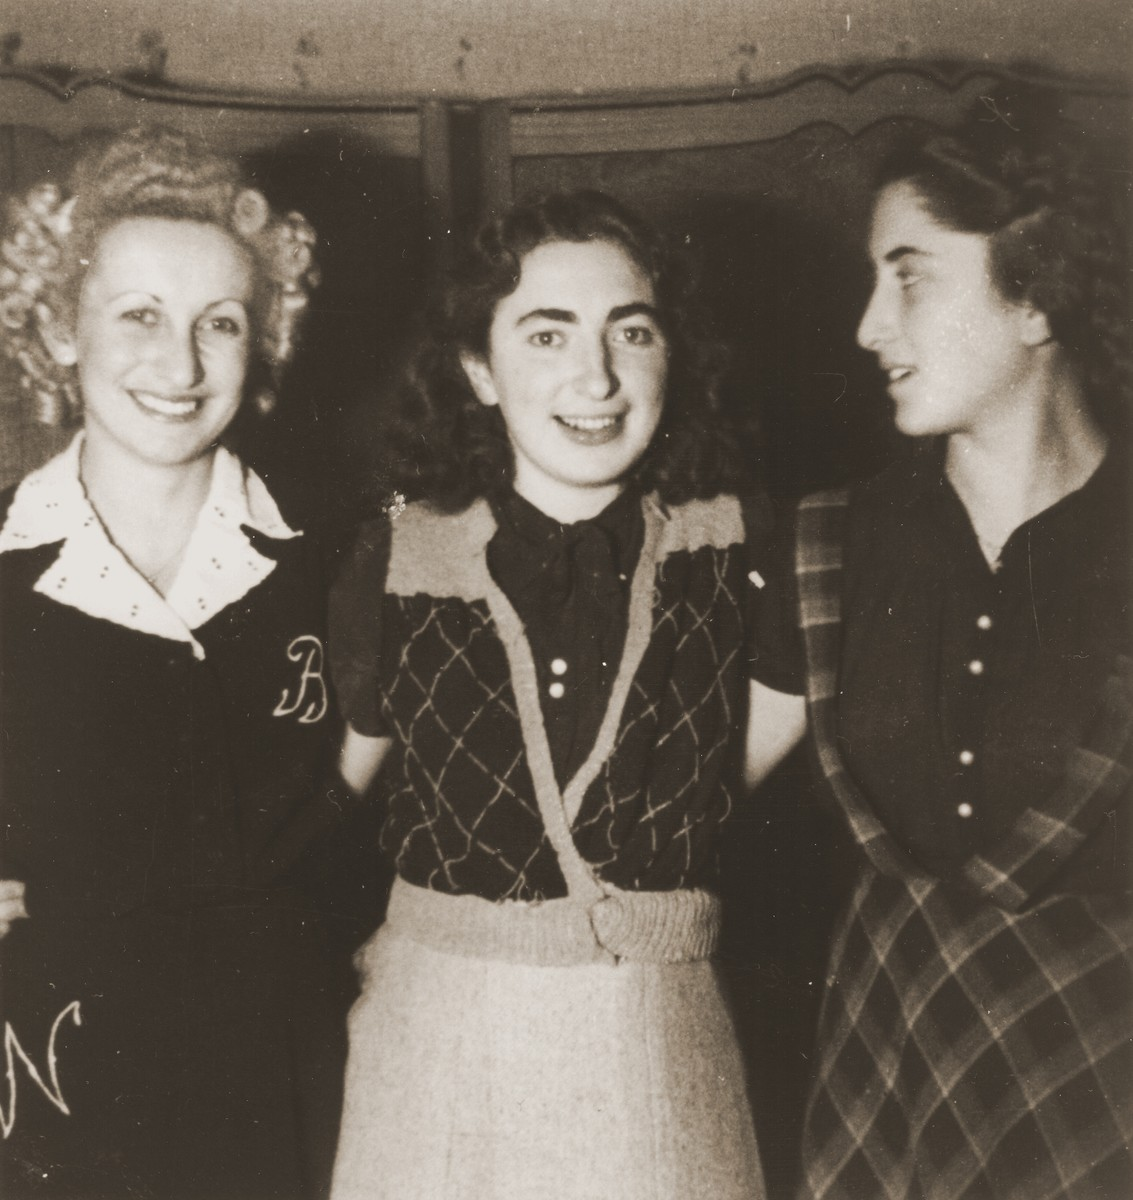 Three young women pose in the Cernauti ghetto.  Pictured from left to right are Beatrice Neuman, Erika Neuman and their friend Cila Loewenthal.